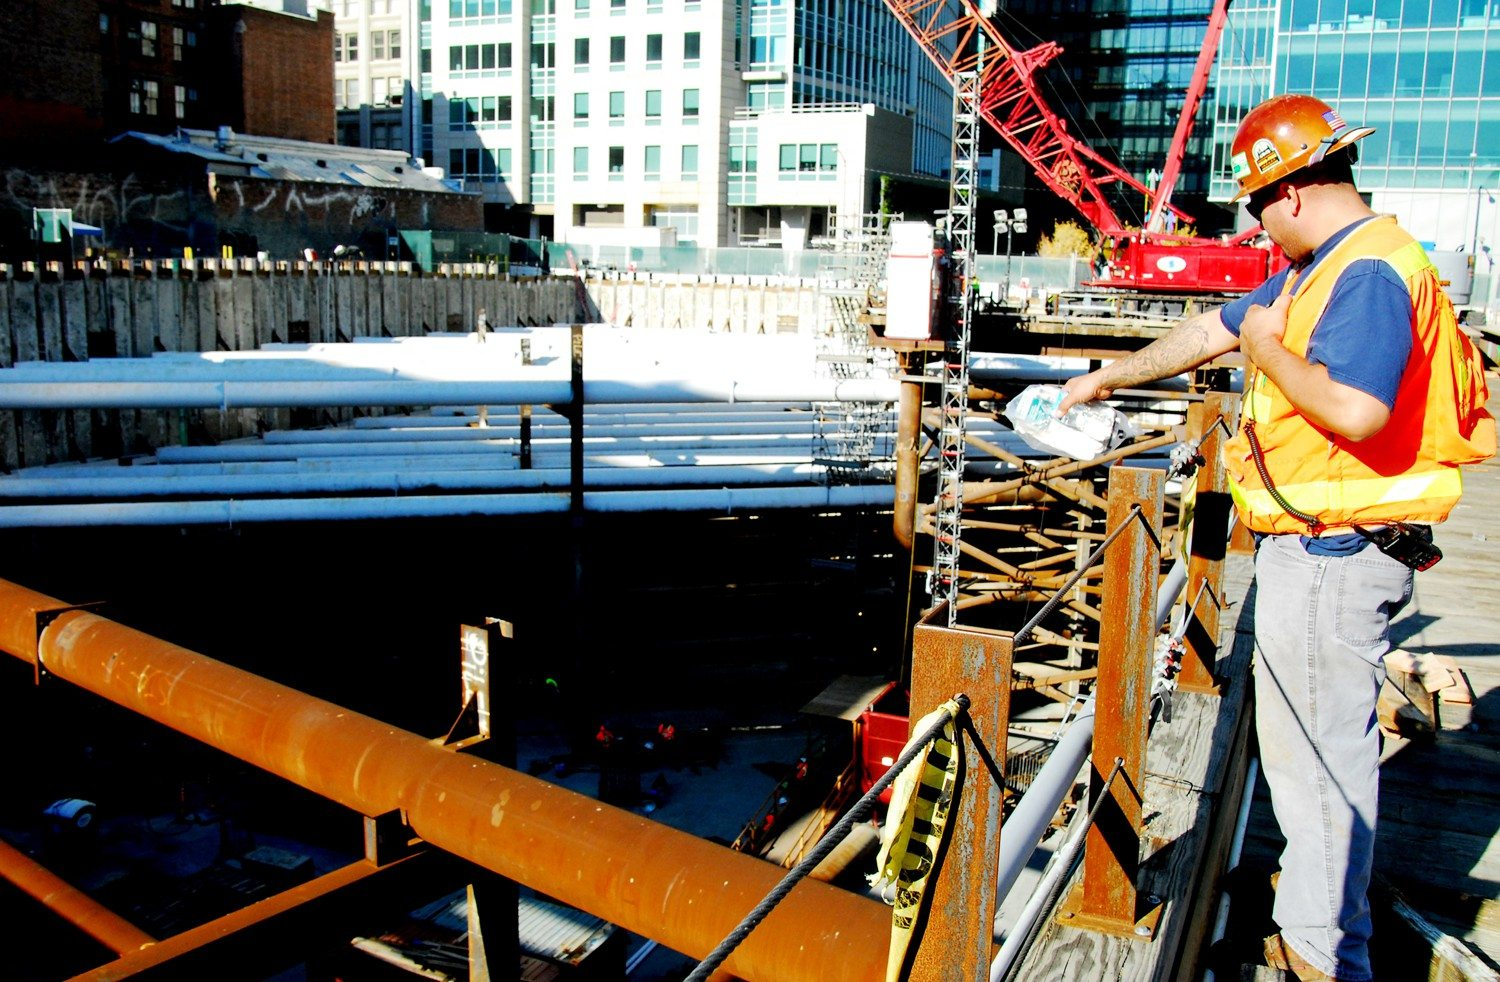 EVAN DUCHARME/SPECIAL TO THE  S.F. EXAMINERWork continues Wednesday at the Transbay Transit Center site downtown.